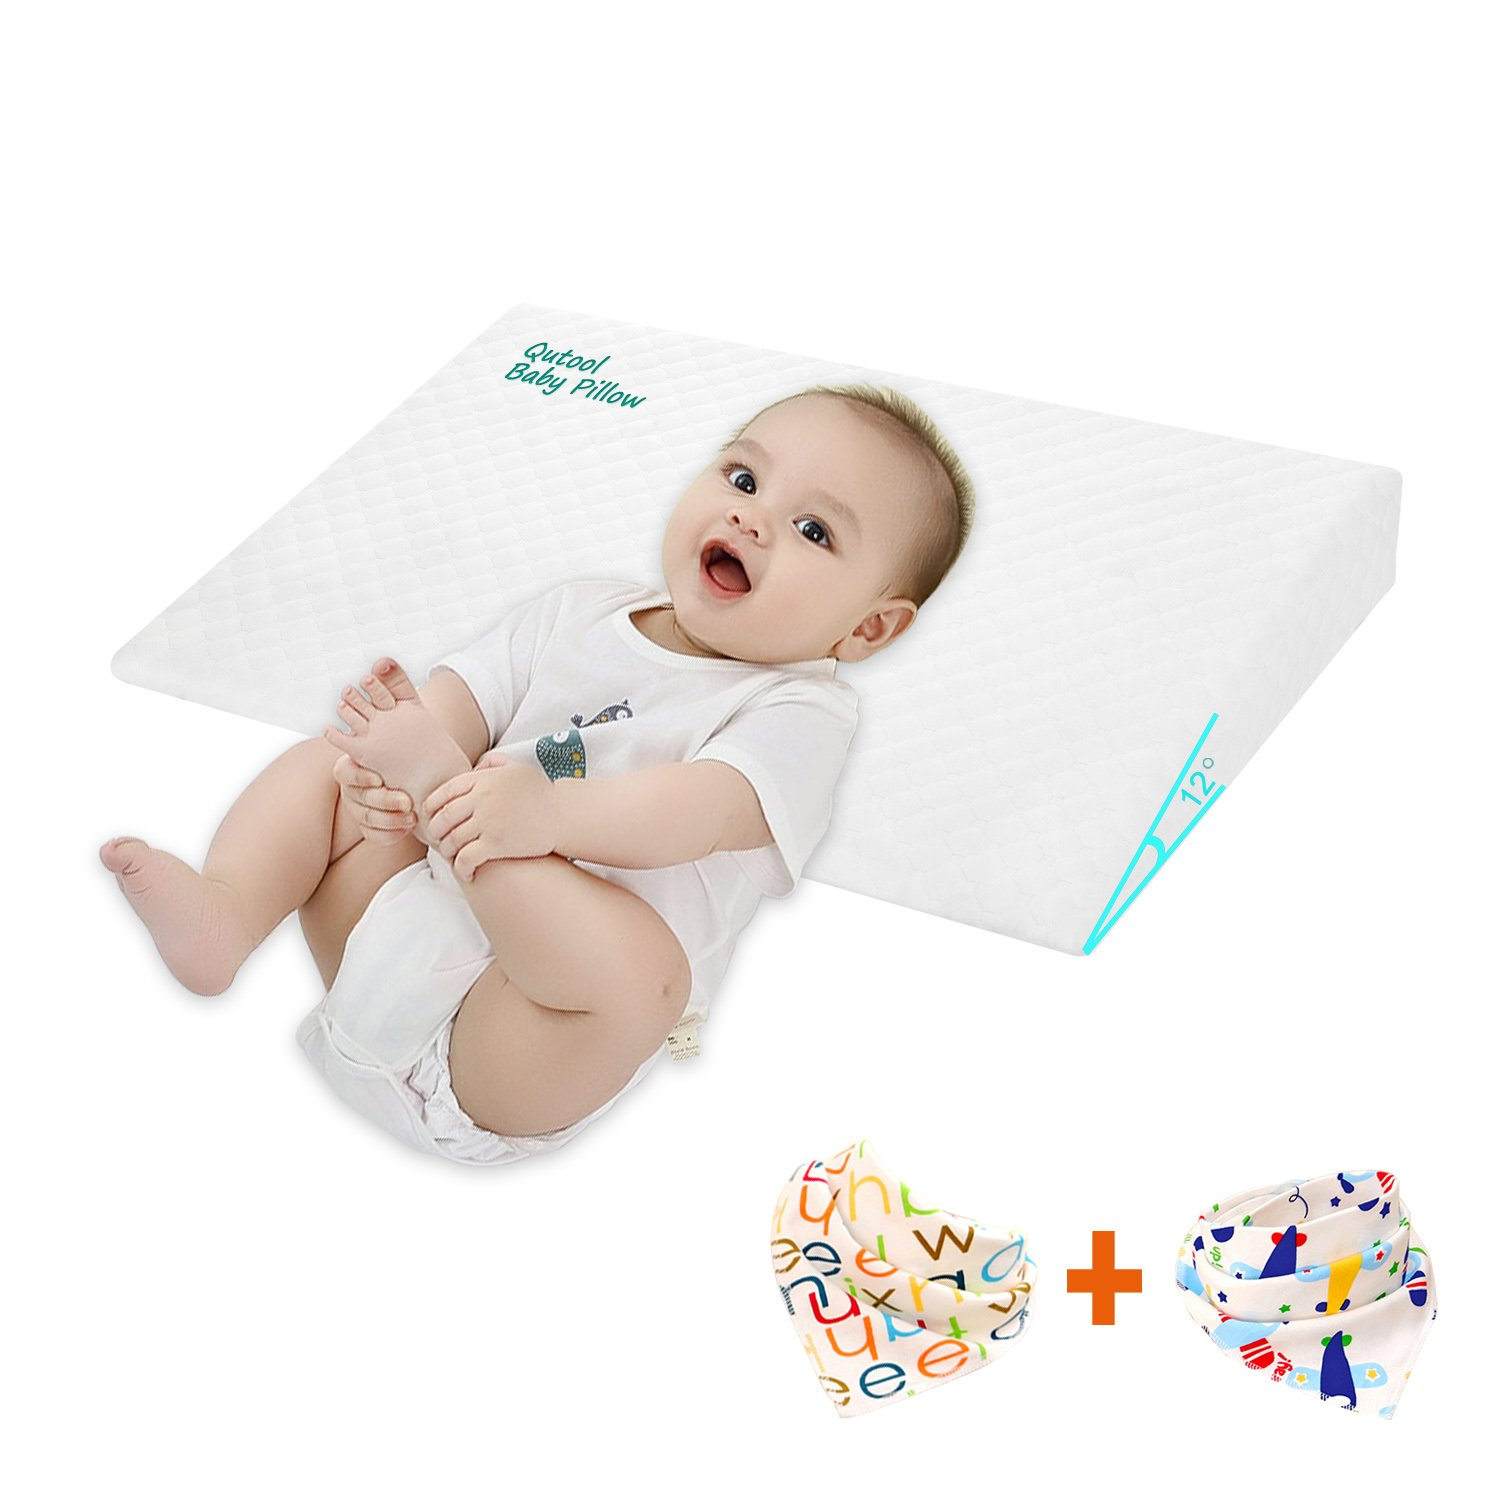 Universal Baby Crib Pillow for Baby Mattress Memory Foam Crib Wedge Infant Sleep Pillow Reflux and Nasal Congestion Reducer 12-Degree Incline for Better Night's Sleep by Qutool